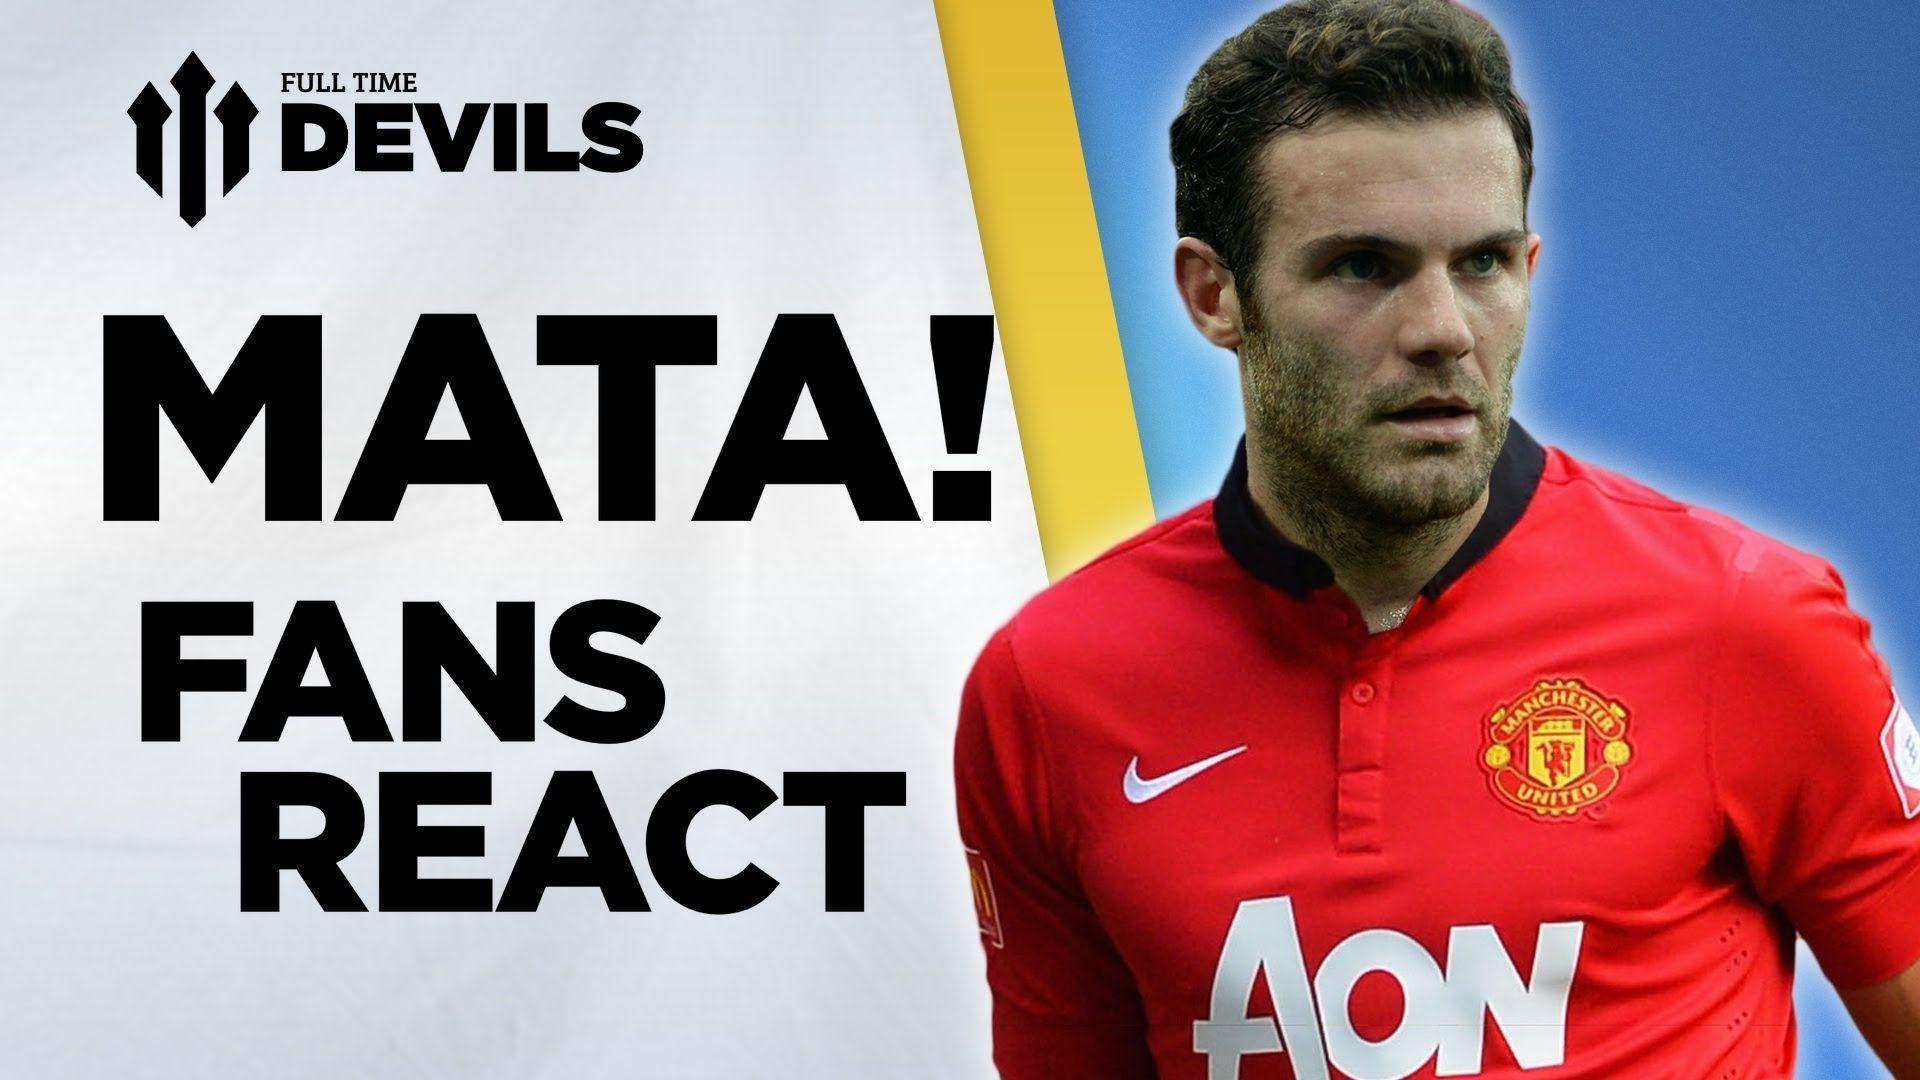 juan mata manchester united wallpapers | Desktop Backgrounds for ...